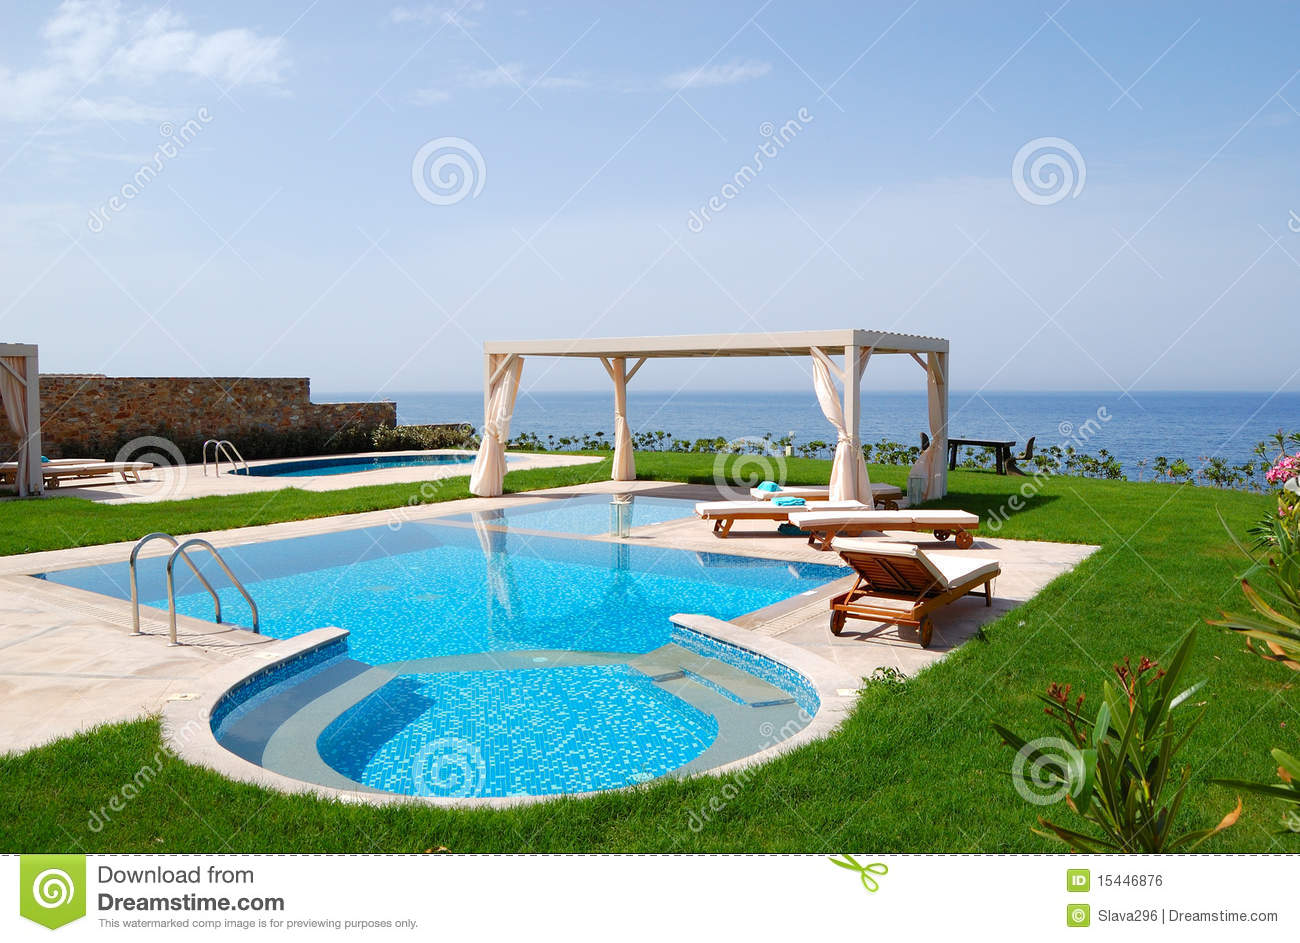 Swimming pool with jacuzzi royalty free stock image for Piscinas bonitas